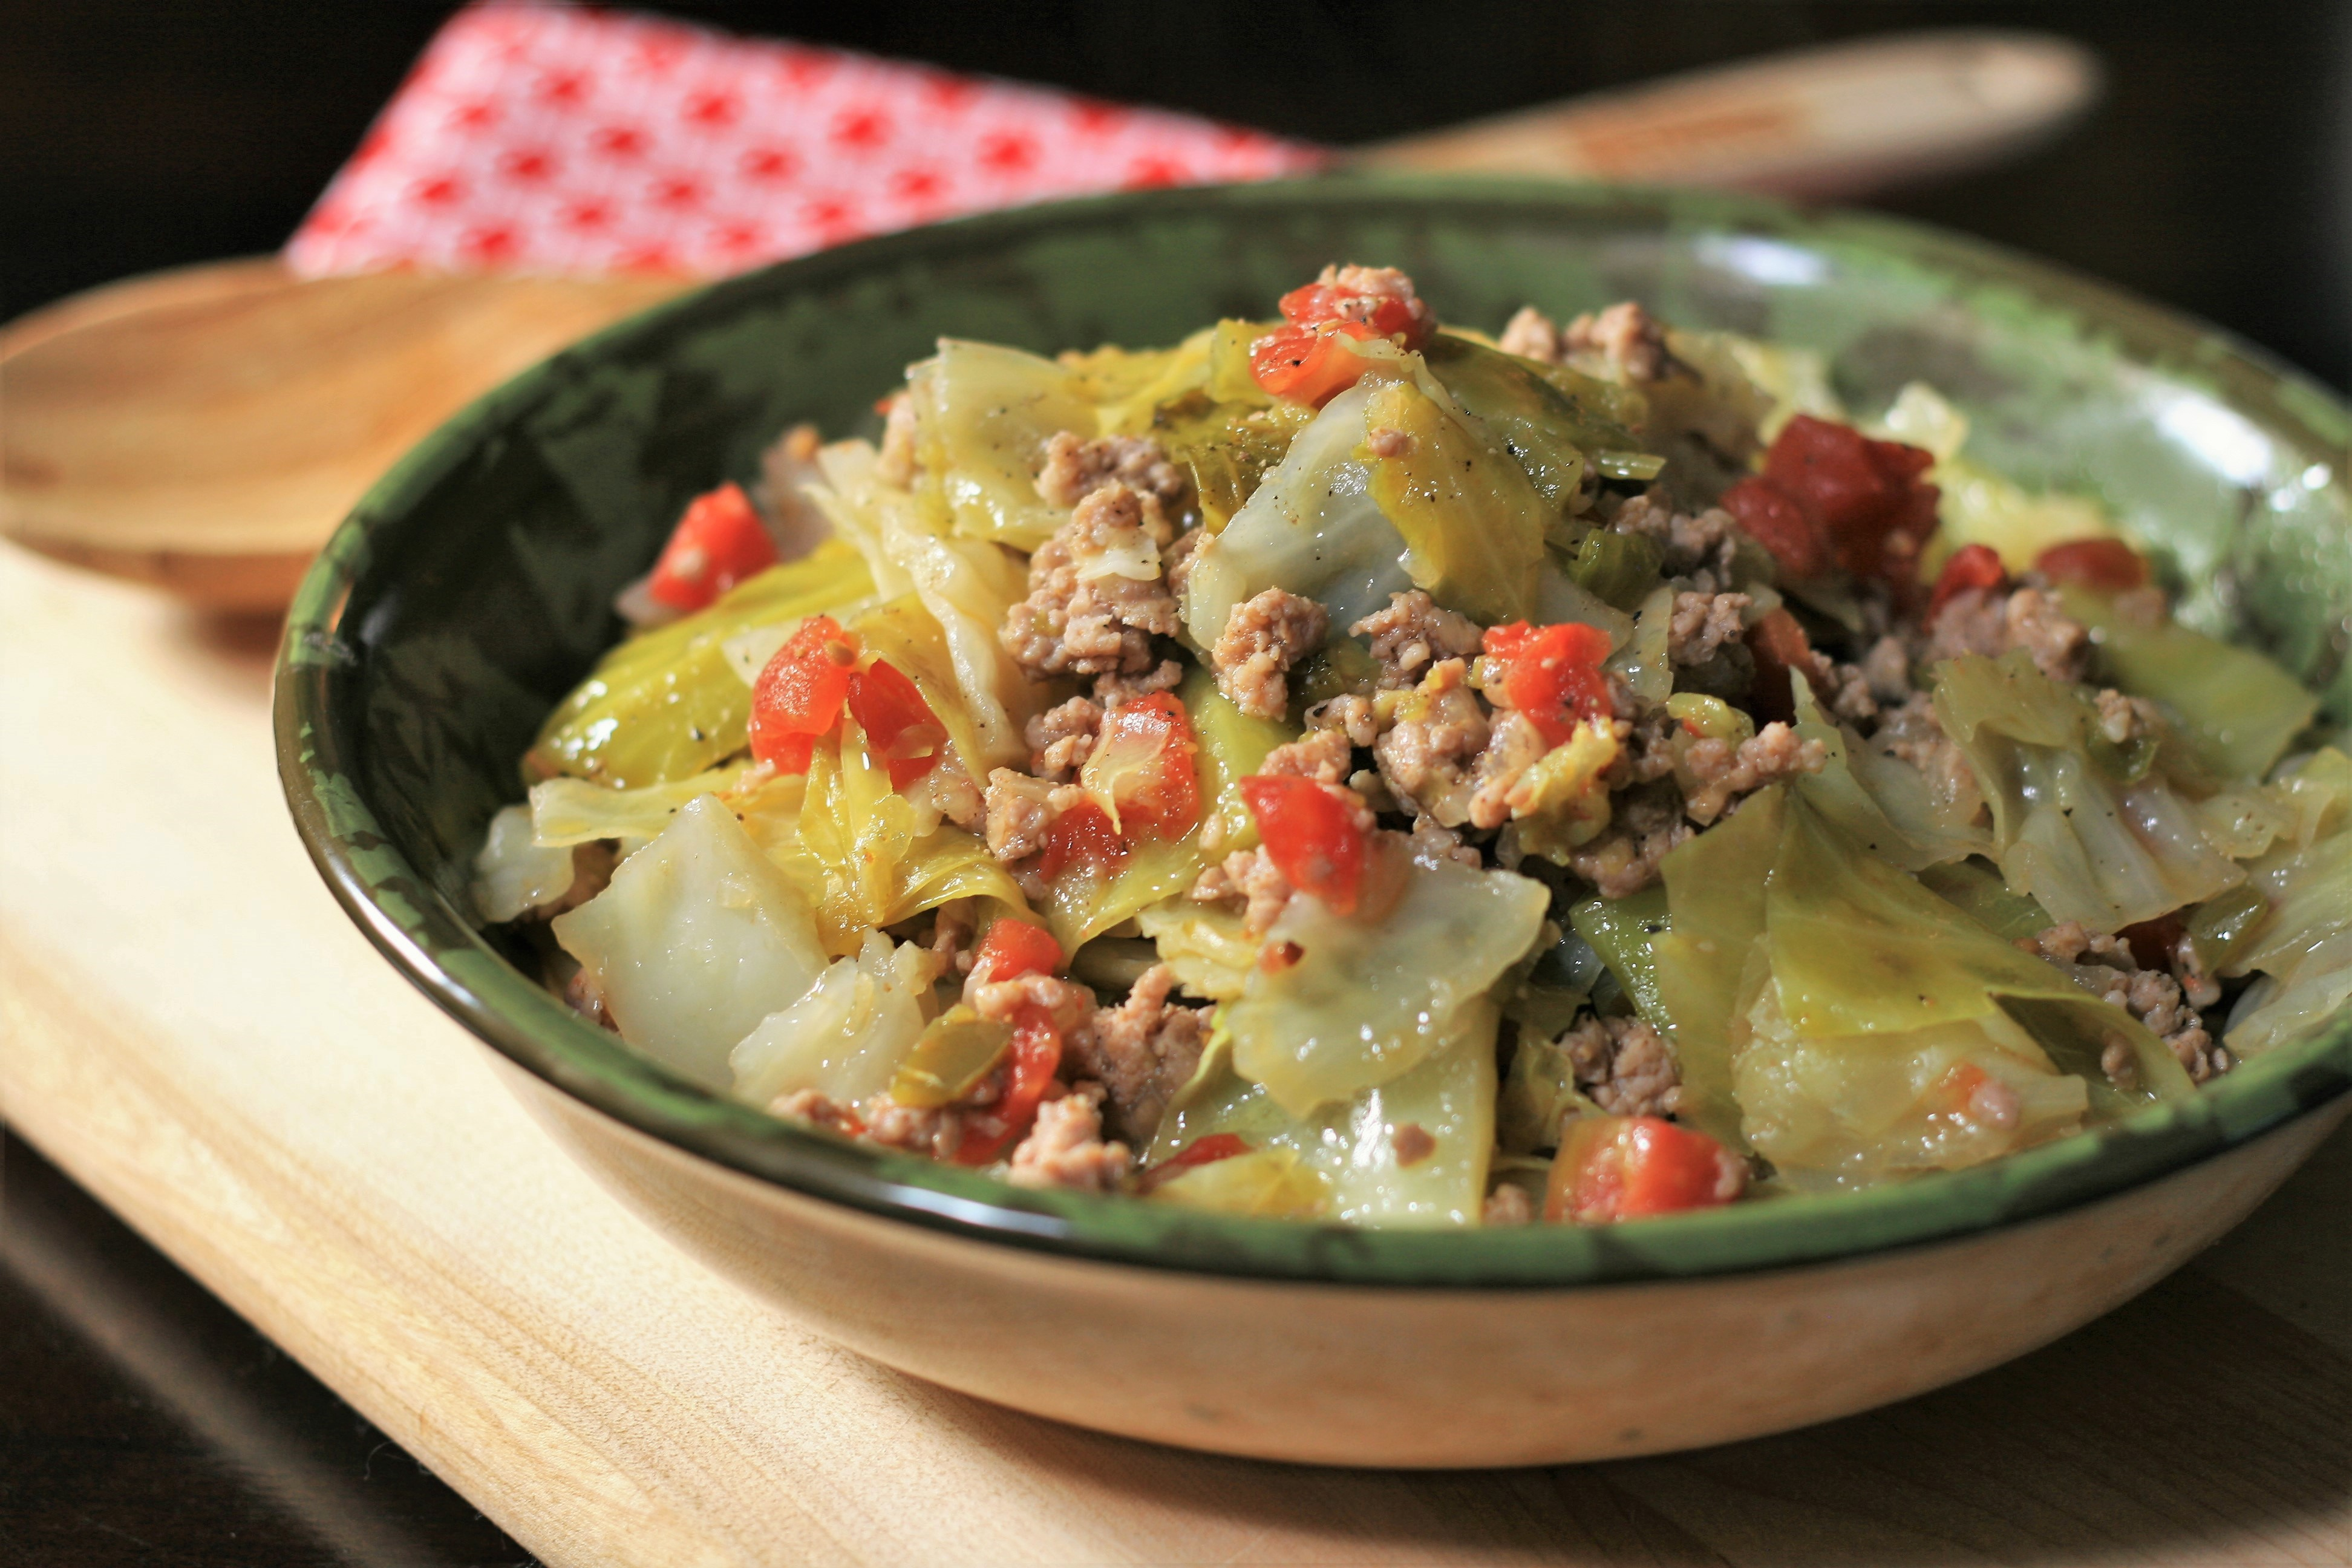 Ms. Angela's Smothered Cabbage